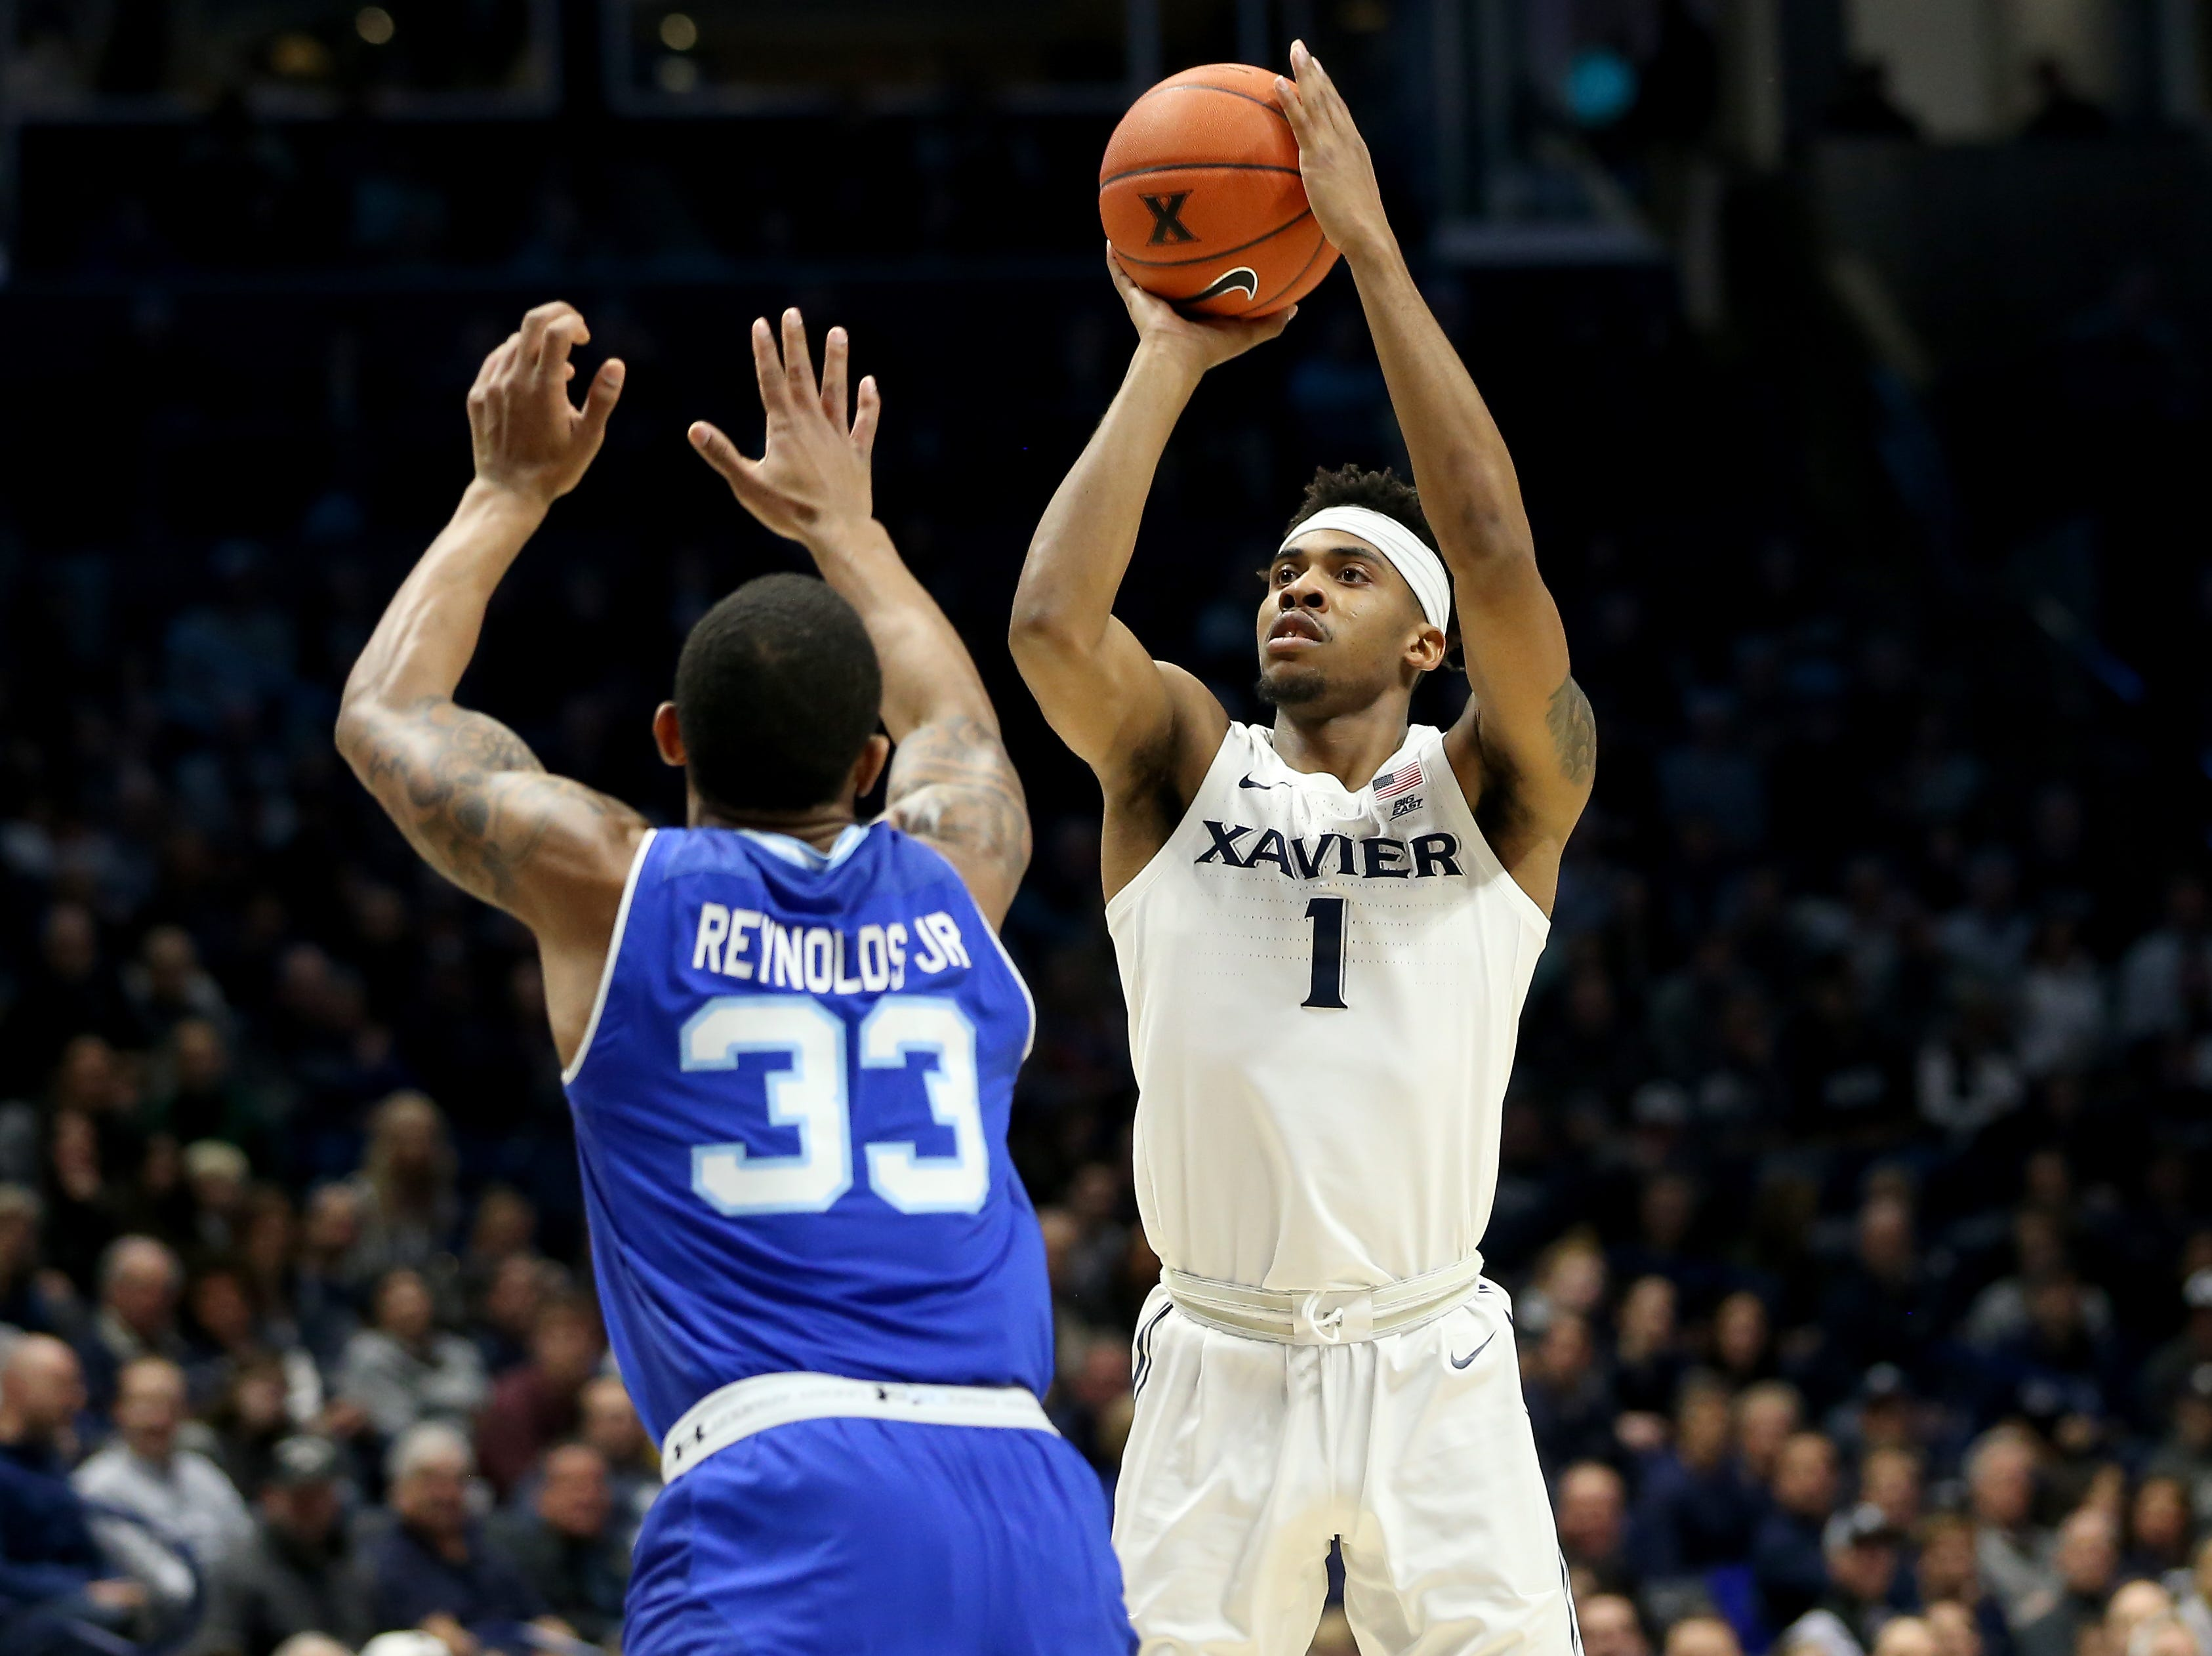 Xavier Musketeers guard Paul Scruggs (1) rises for a shot over Seton Hall Pirates guard Shavar Reynolds (33) in the first half of an NCAA college basketball game, Wednesday, Jan. 2, 2019, at the Cintas Center in Cincinnati.